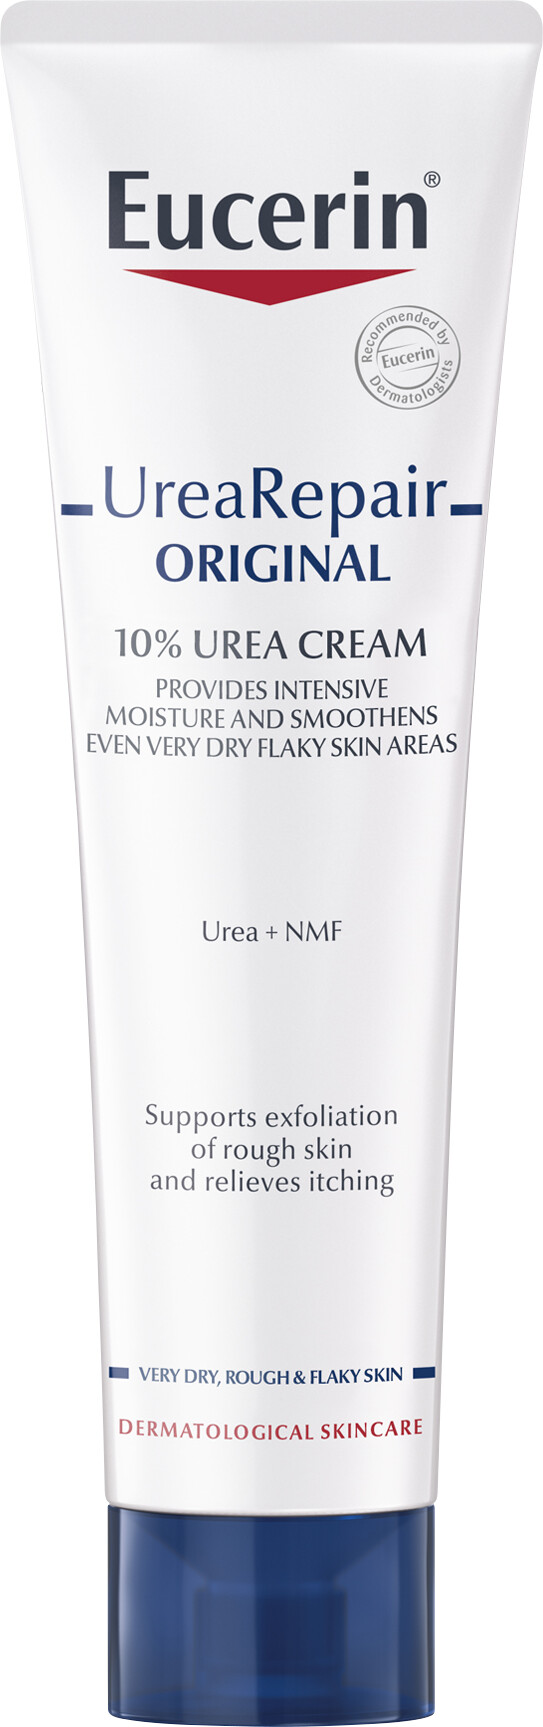 Eucerin Urea Repair Original 10% Urea Cream 100ml